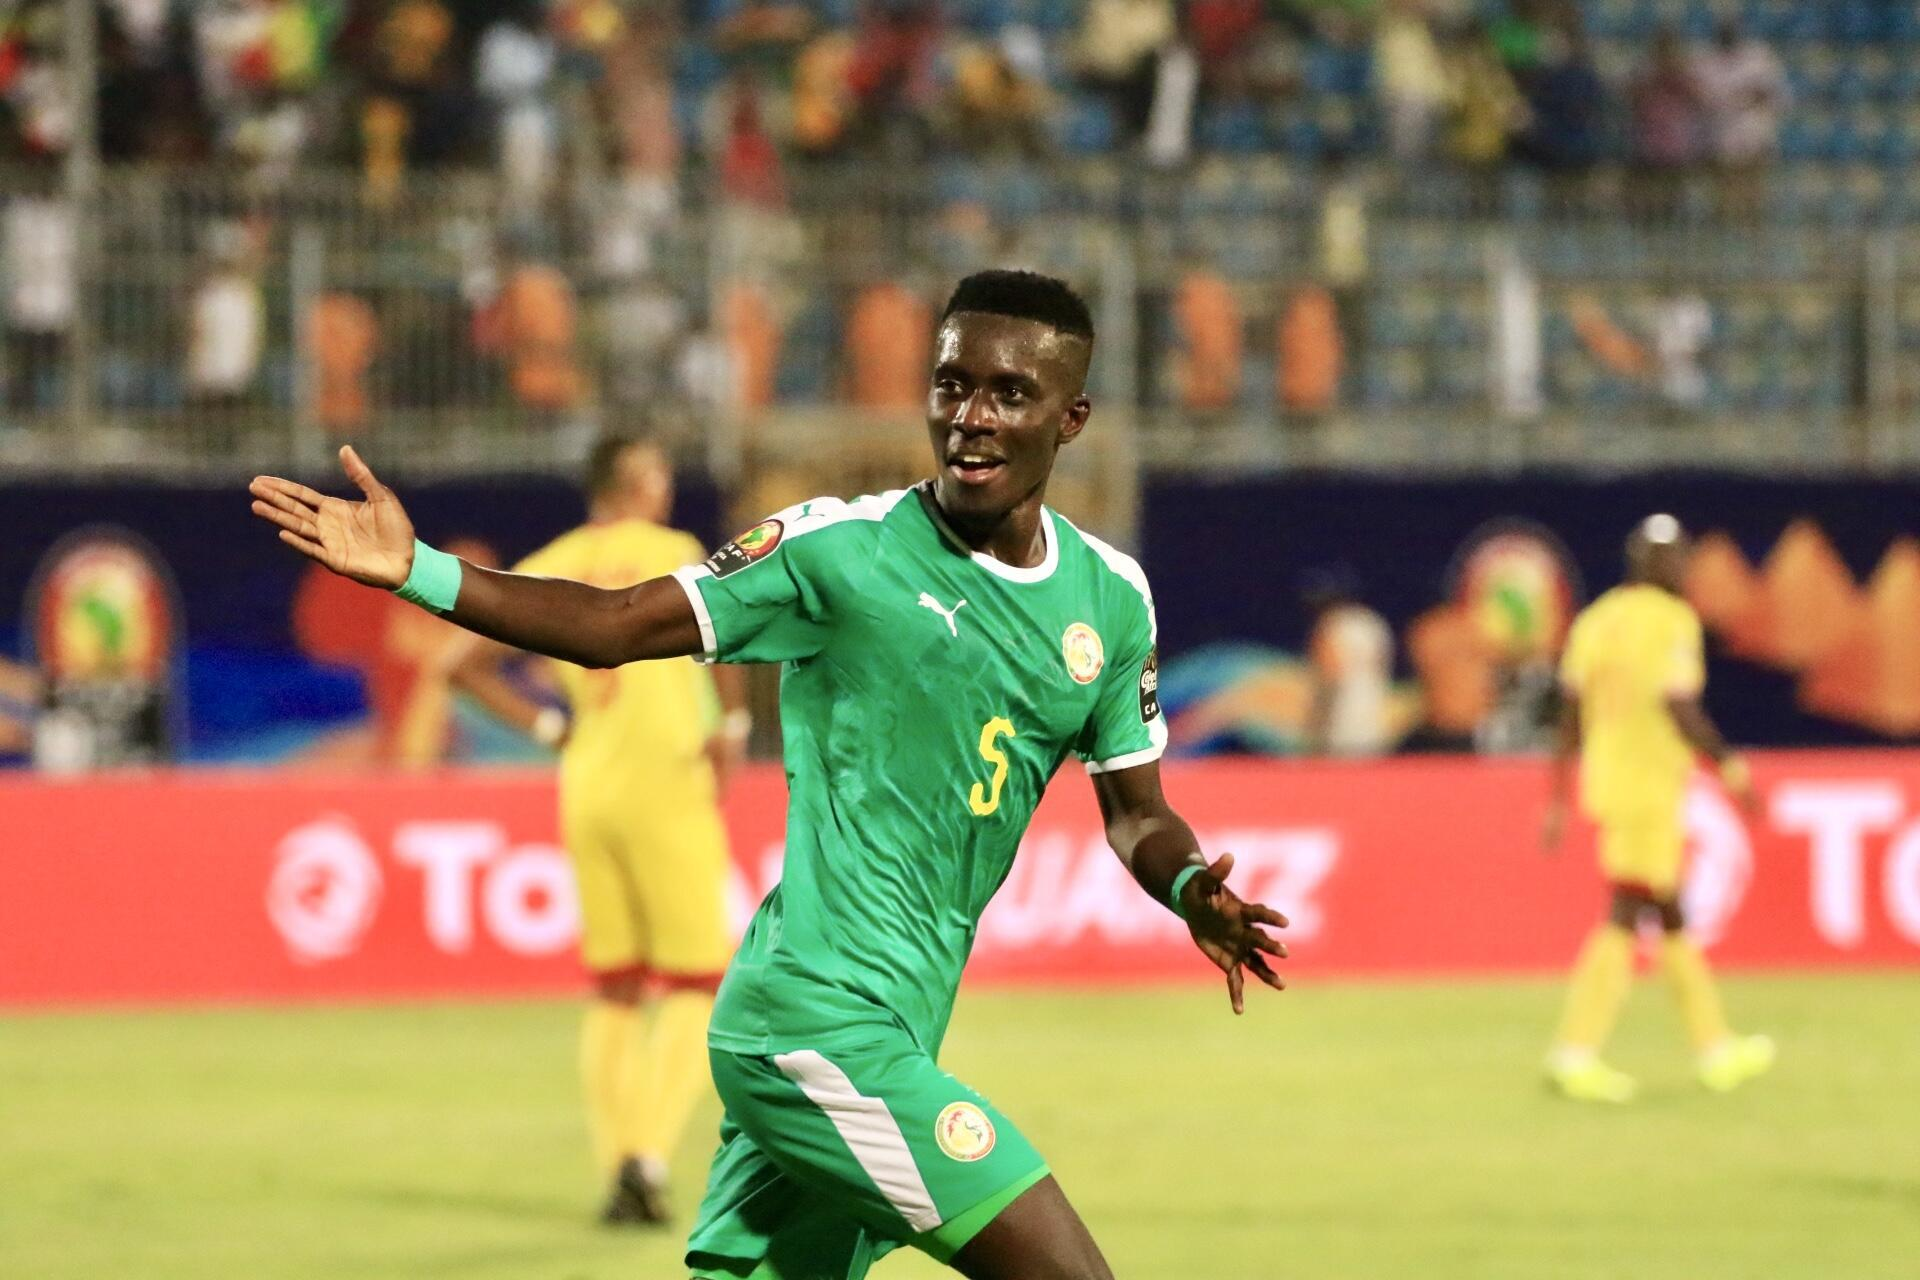 Idrissa Gana Gueye's goal took Senegal to the semi-final for the first time since 2006.